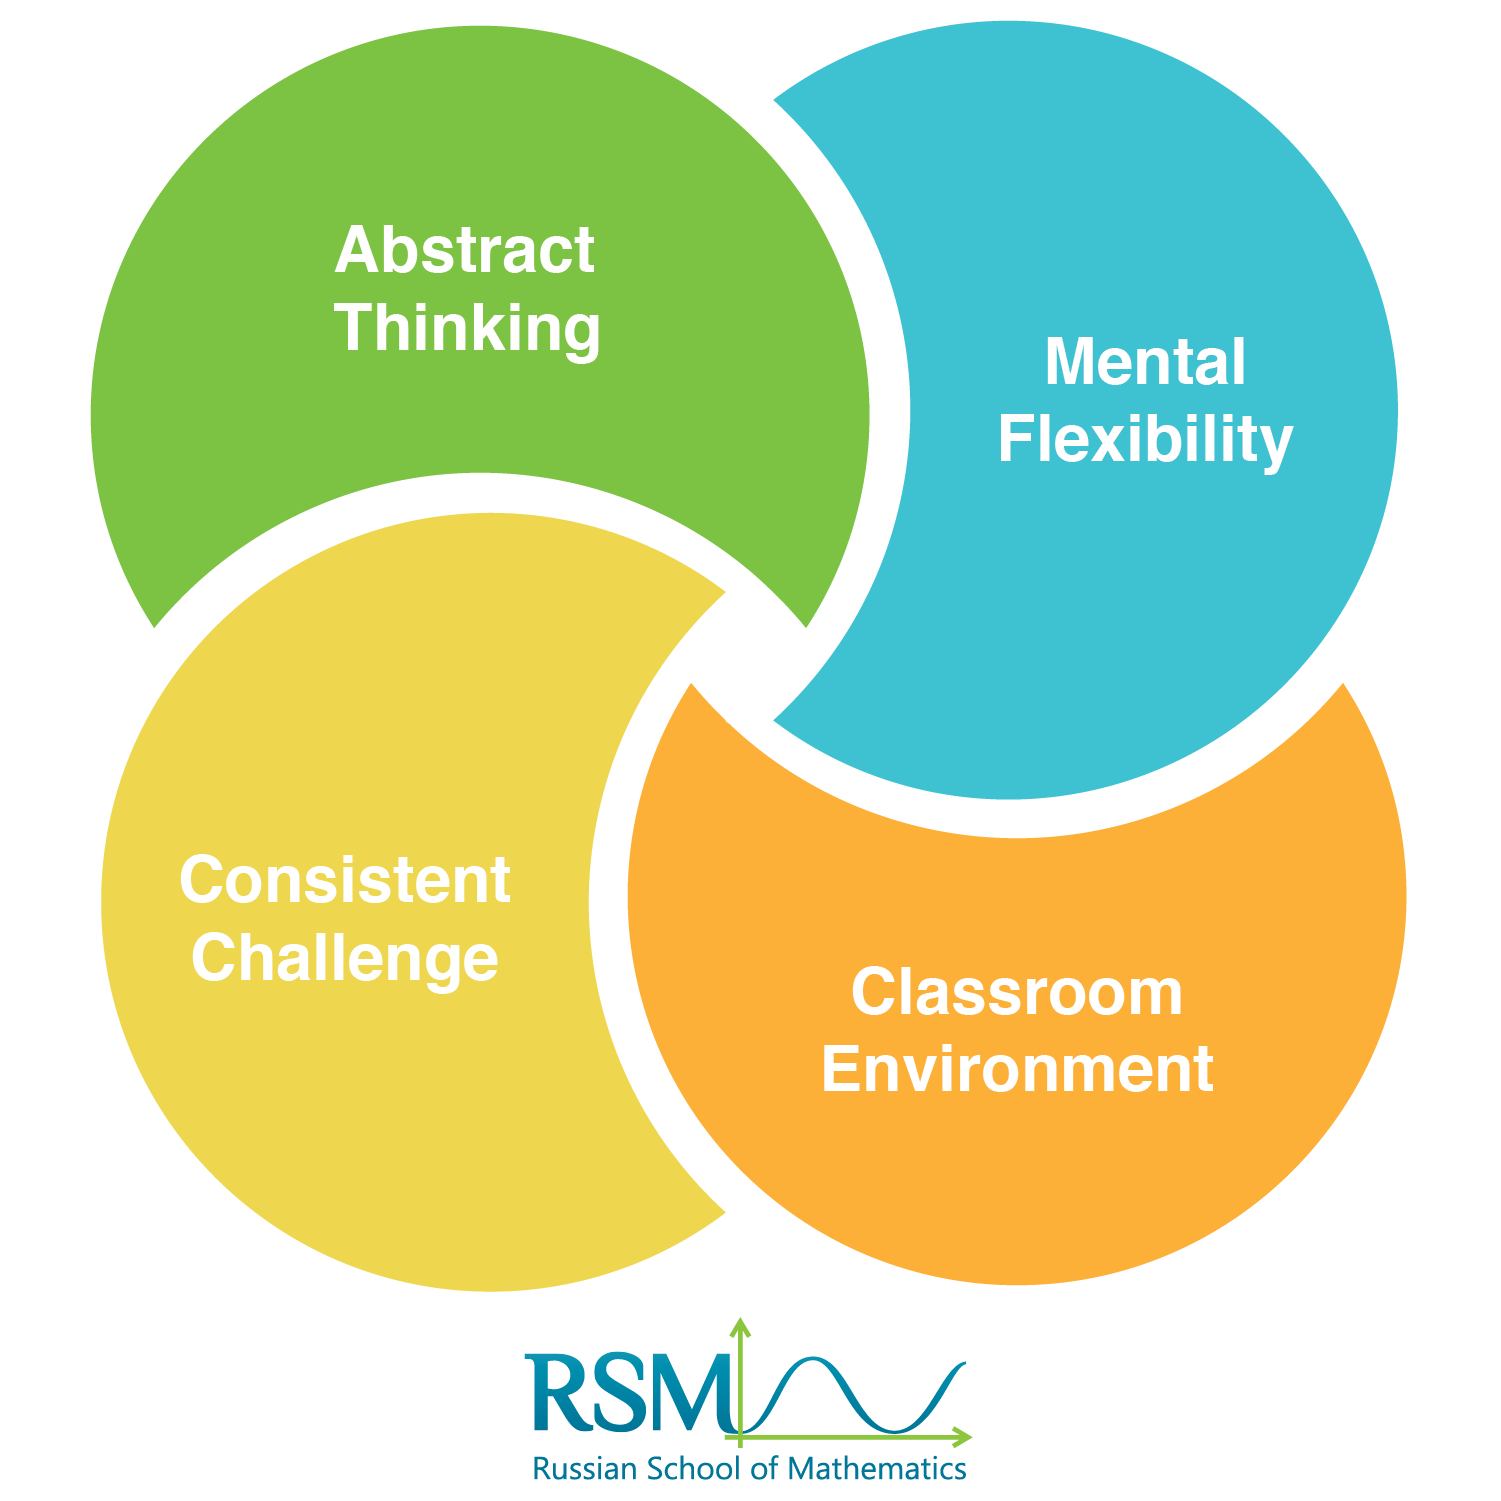 Venn diagram showing how the RSM Math Programs blend Eaerly Abstract Thinking, Mental Flexibility, Consistent Challenges, and Classroom Environment